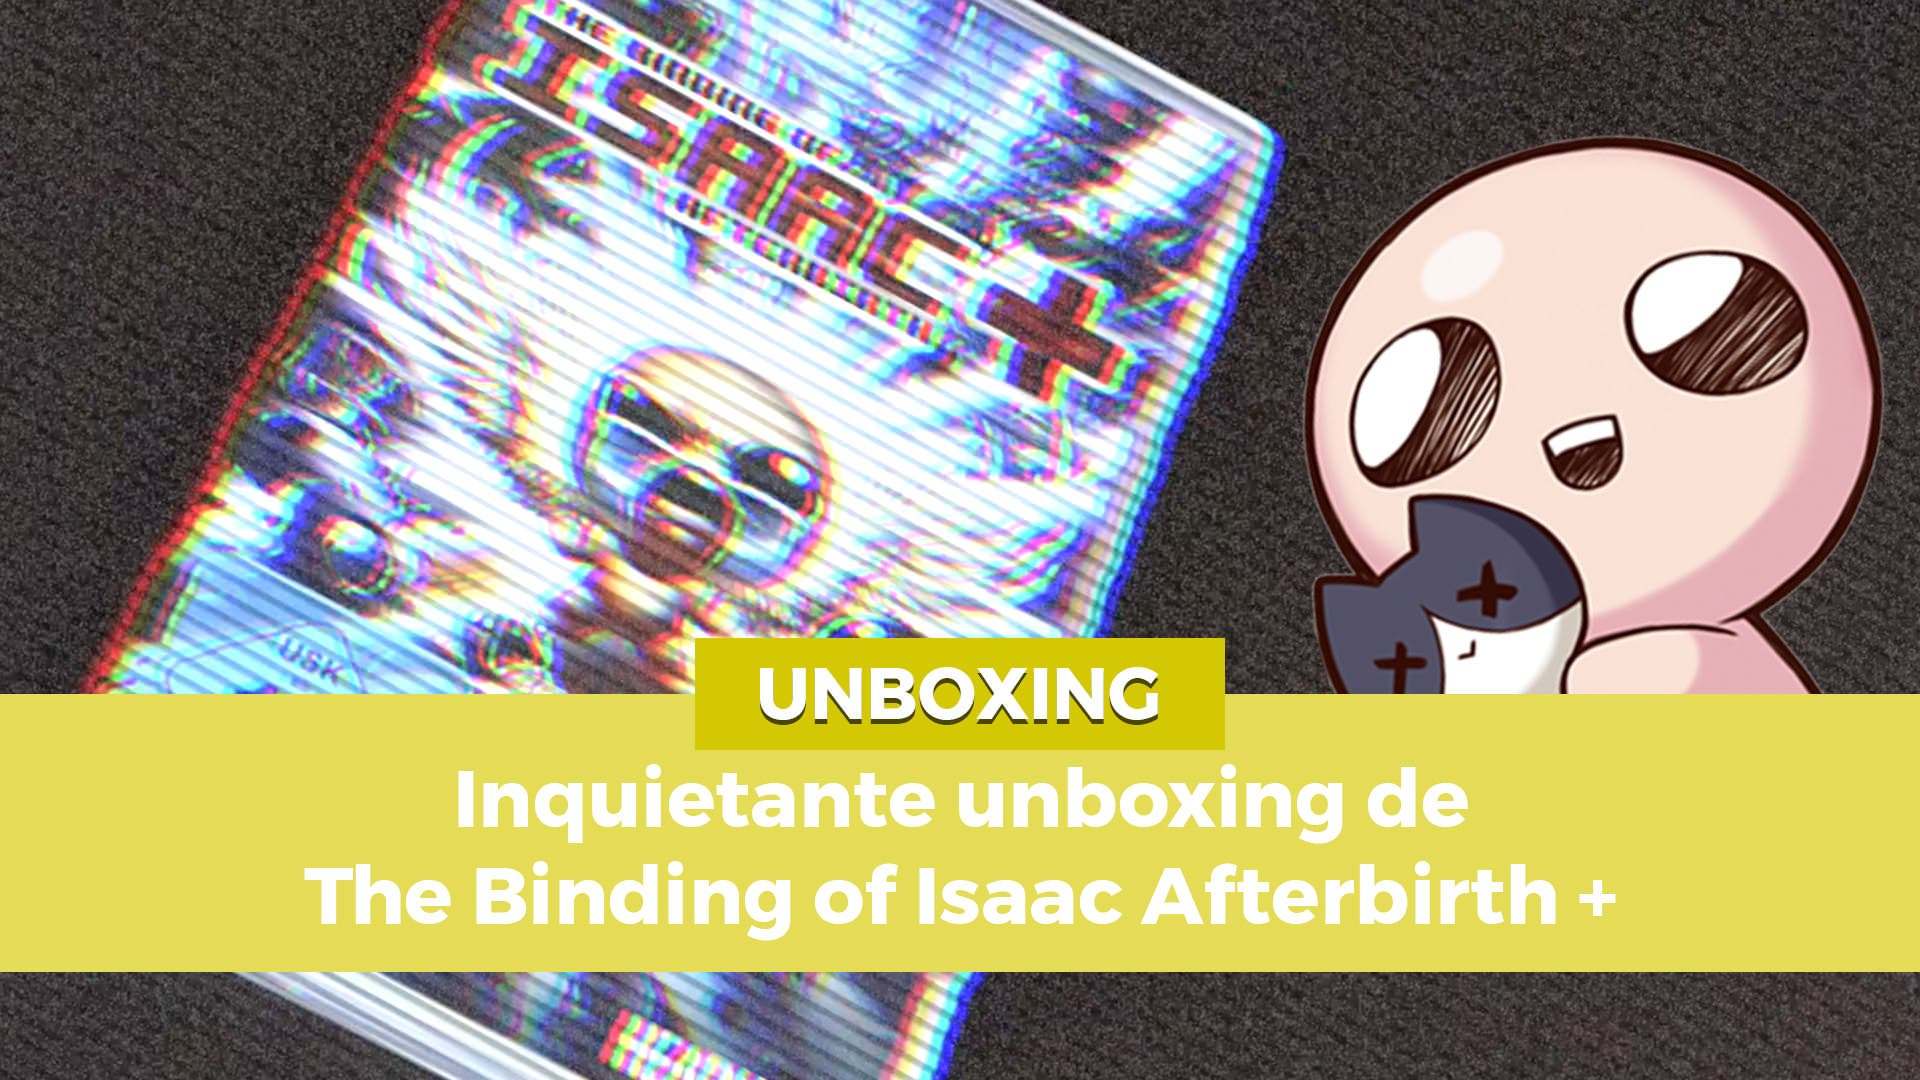 Unboxing Inquietante De The Binding Of Isaac Afterbirth Nintendo Switch Para